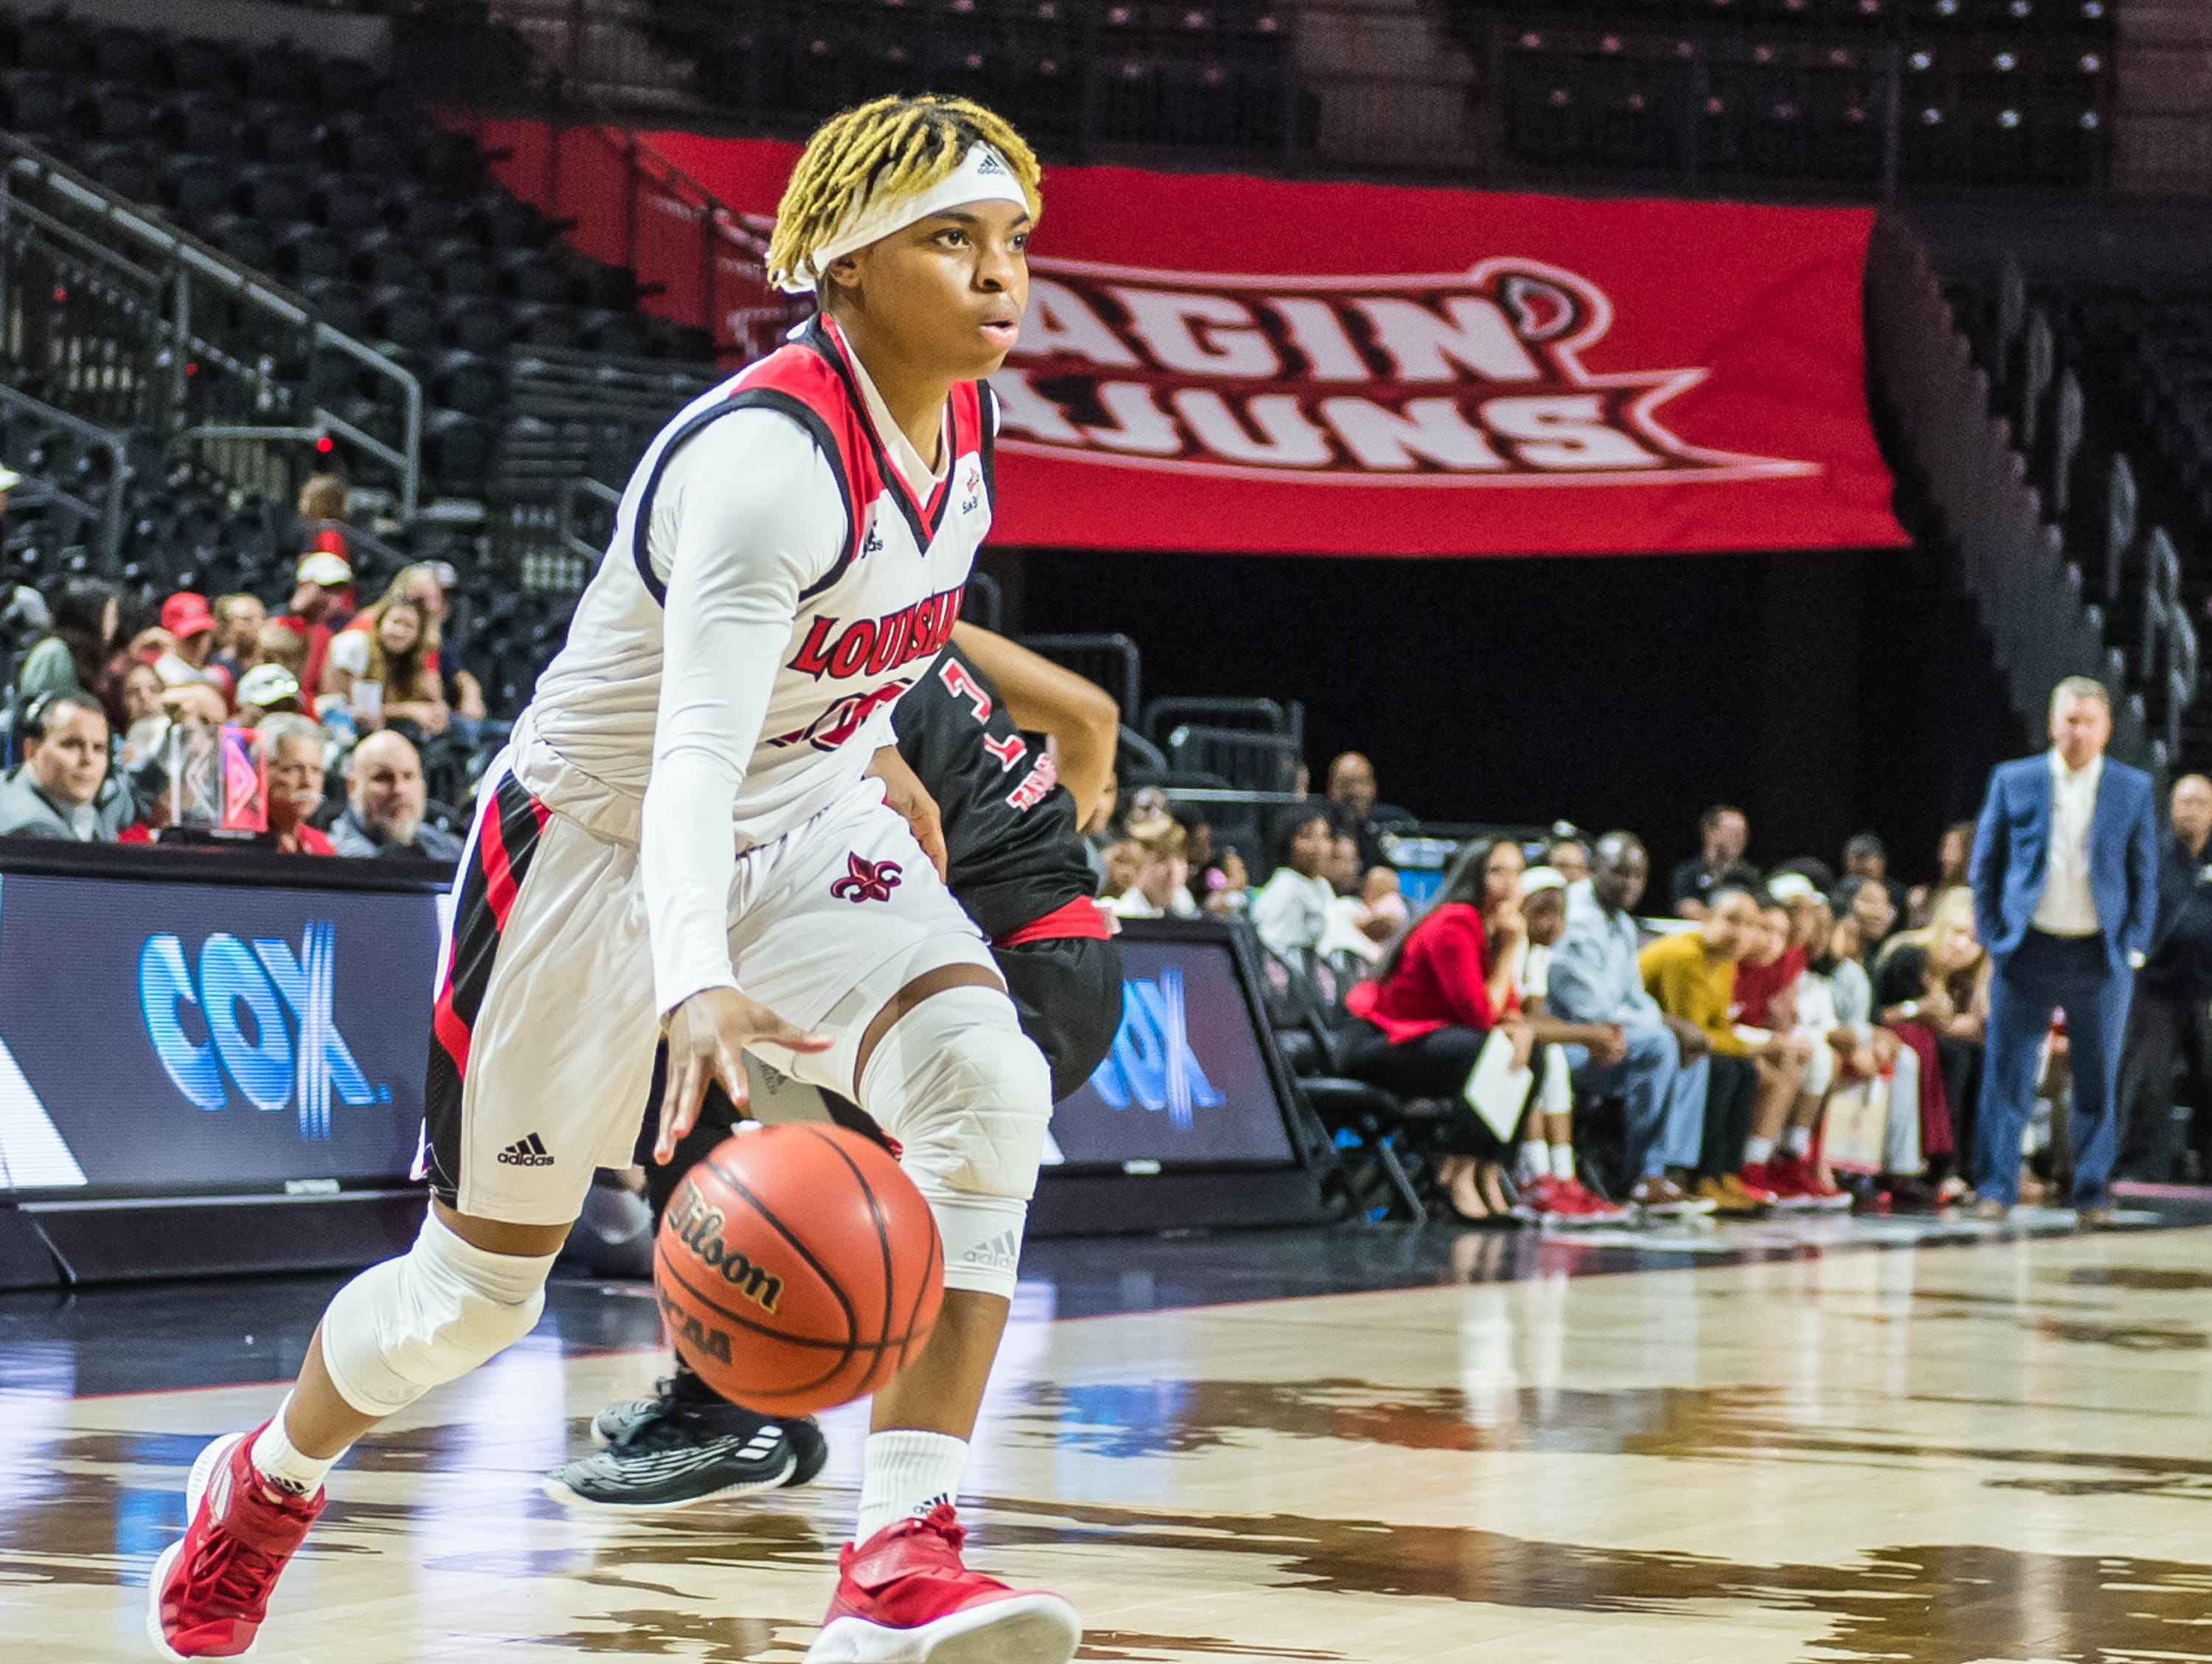 Ragin' Cajuns guard Diamond Morrison (15) works the ball to the basket as the Cajuns women's basketball team plays the Arkansas State Red Wolves at the Cajundome on Saturday, March 9, 2019.